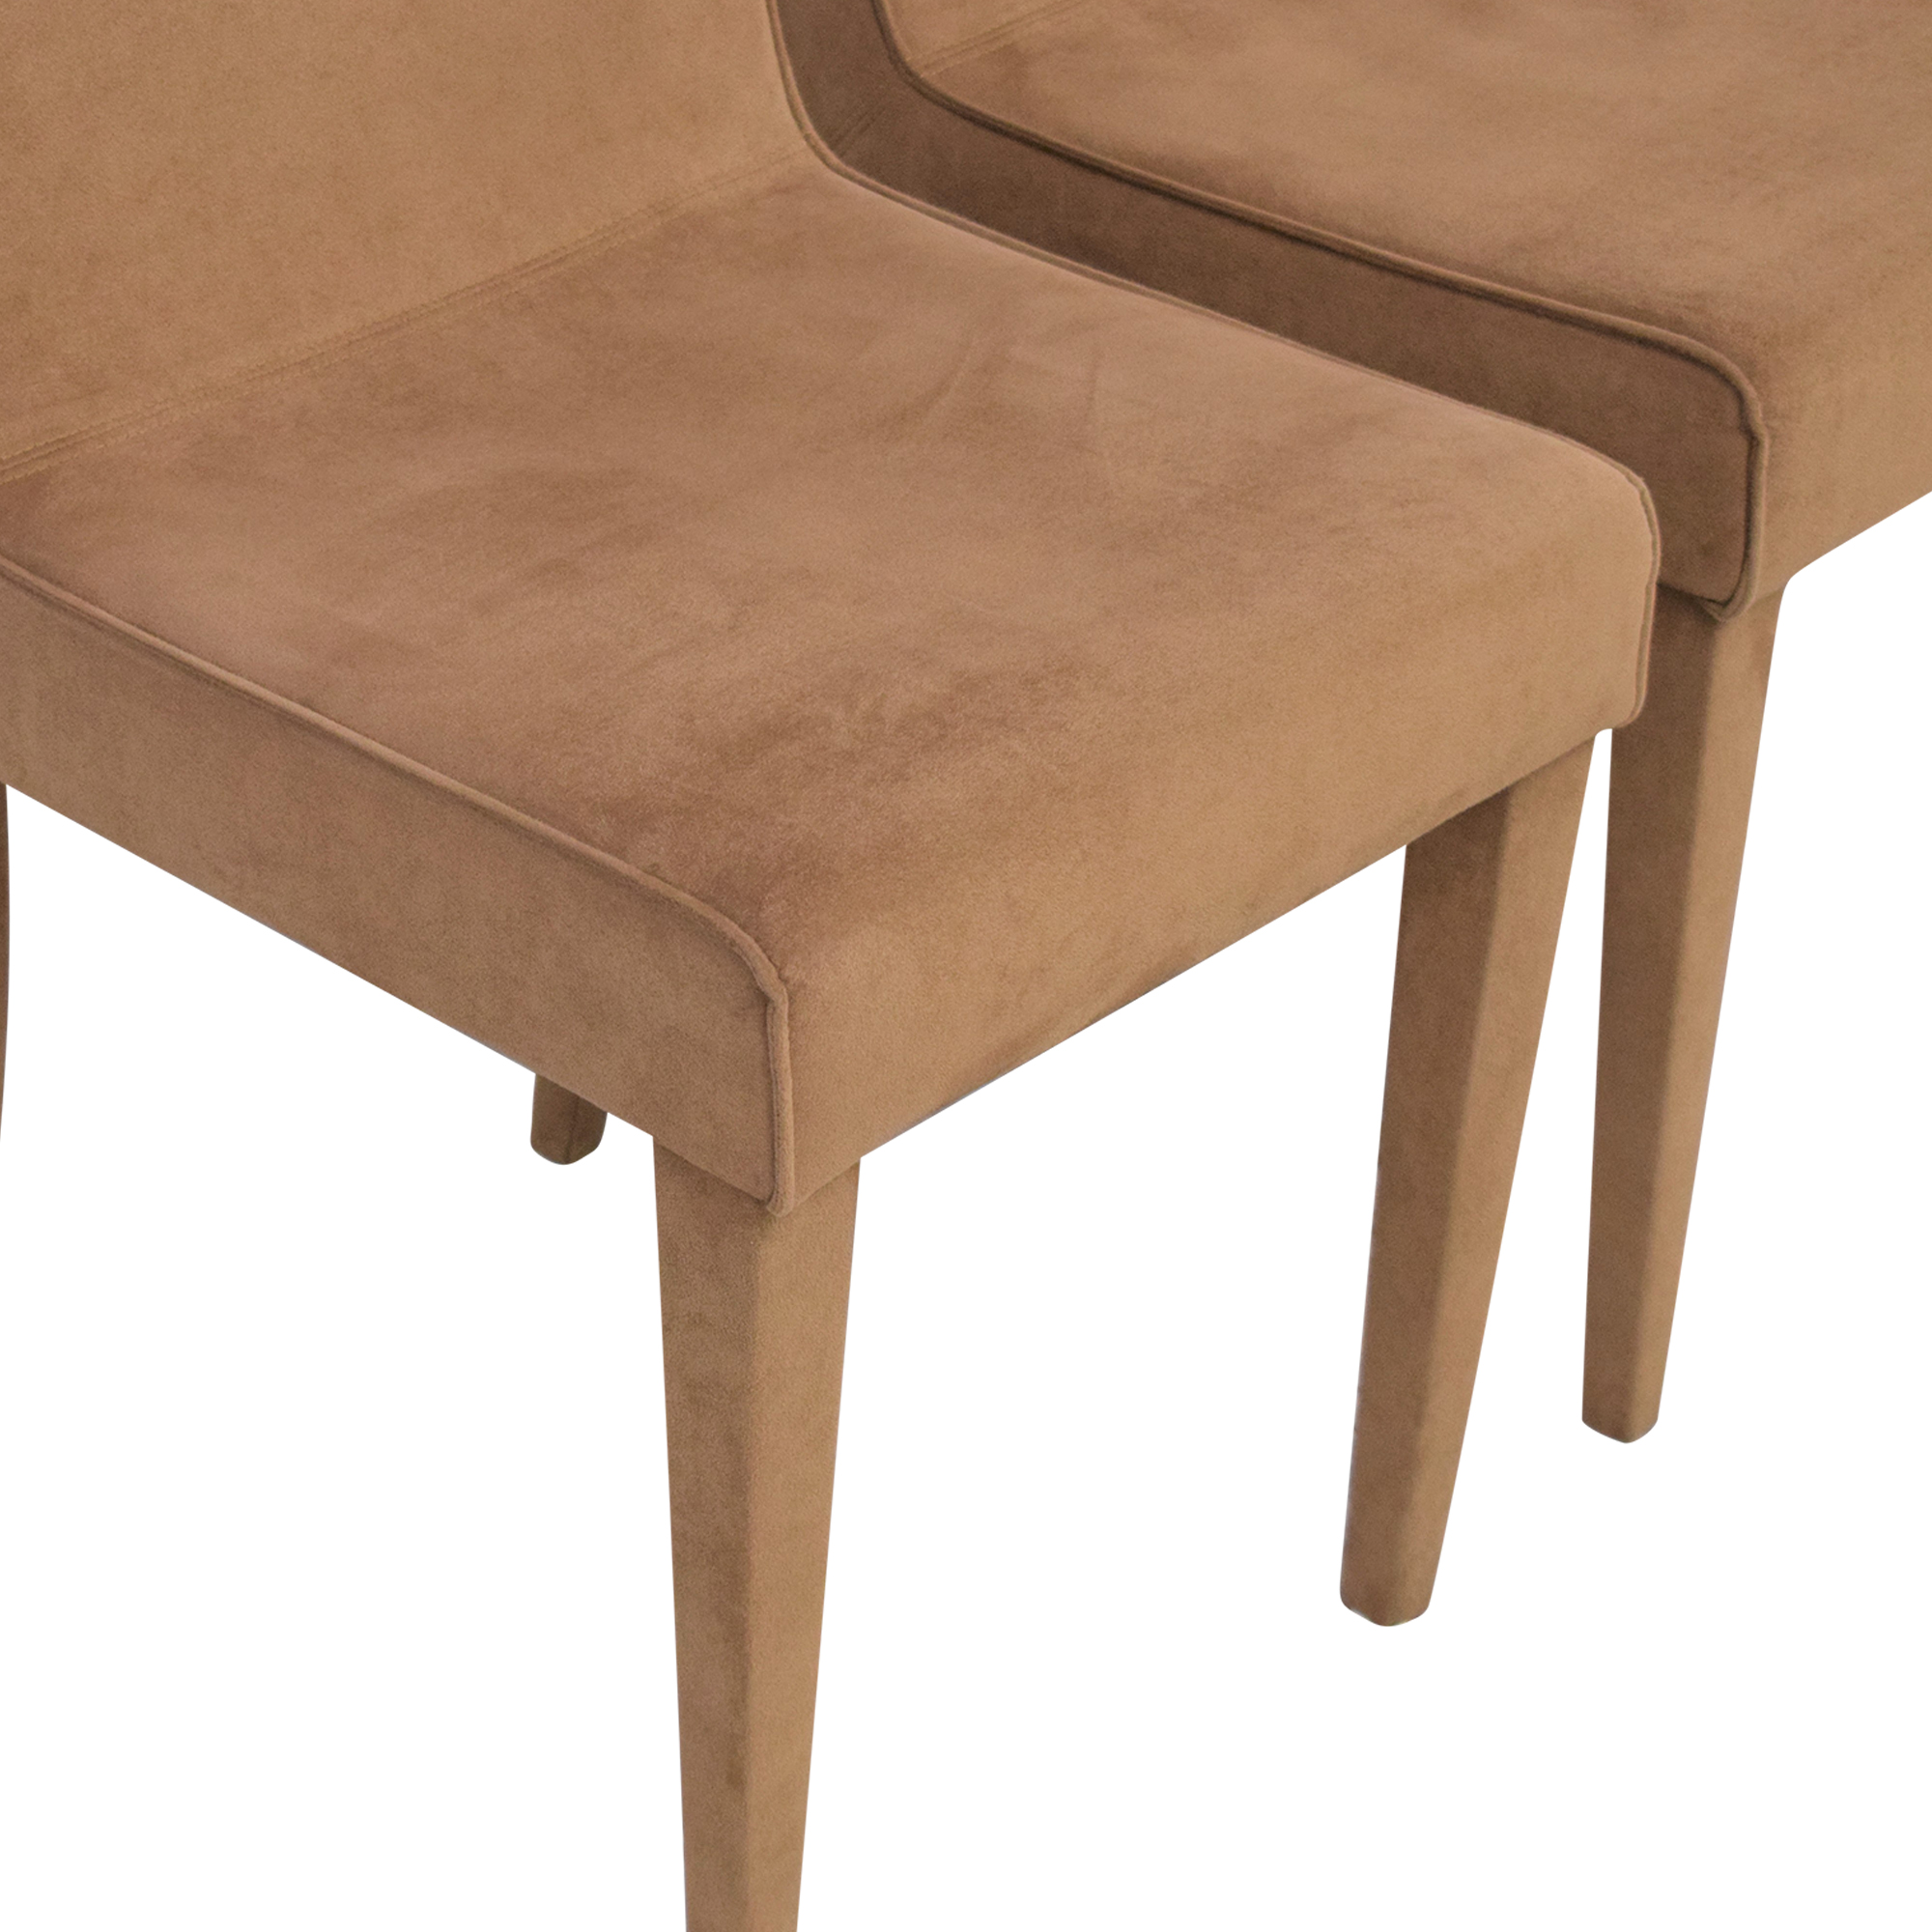 DDC Classic Dining Chairs DDC